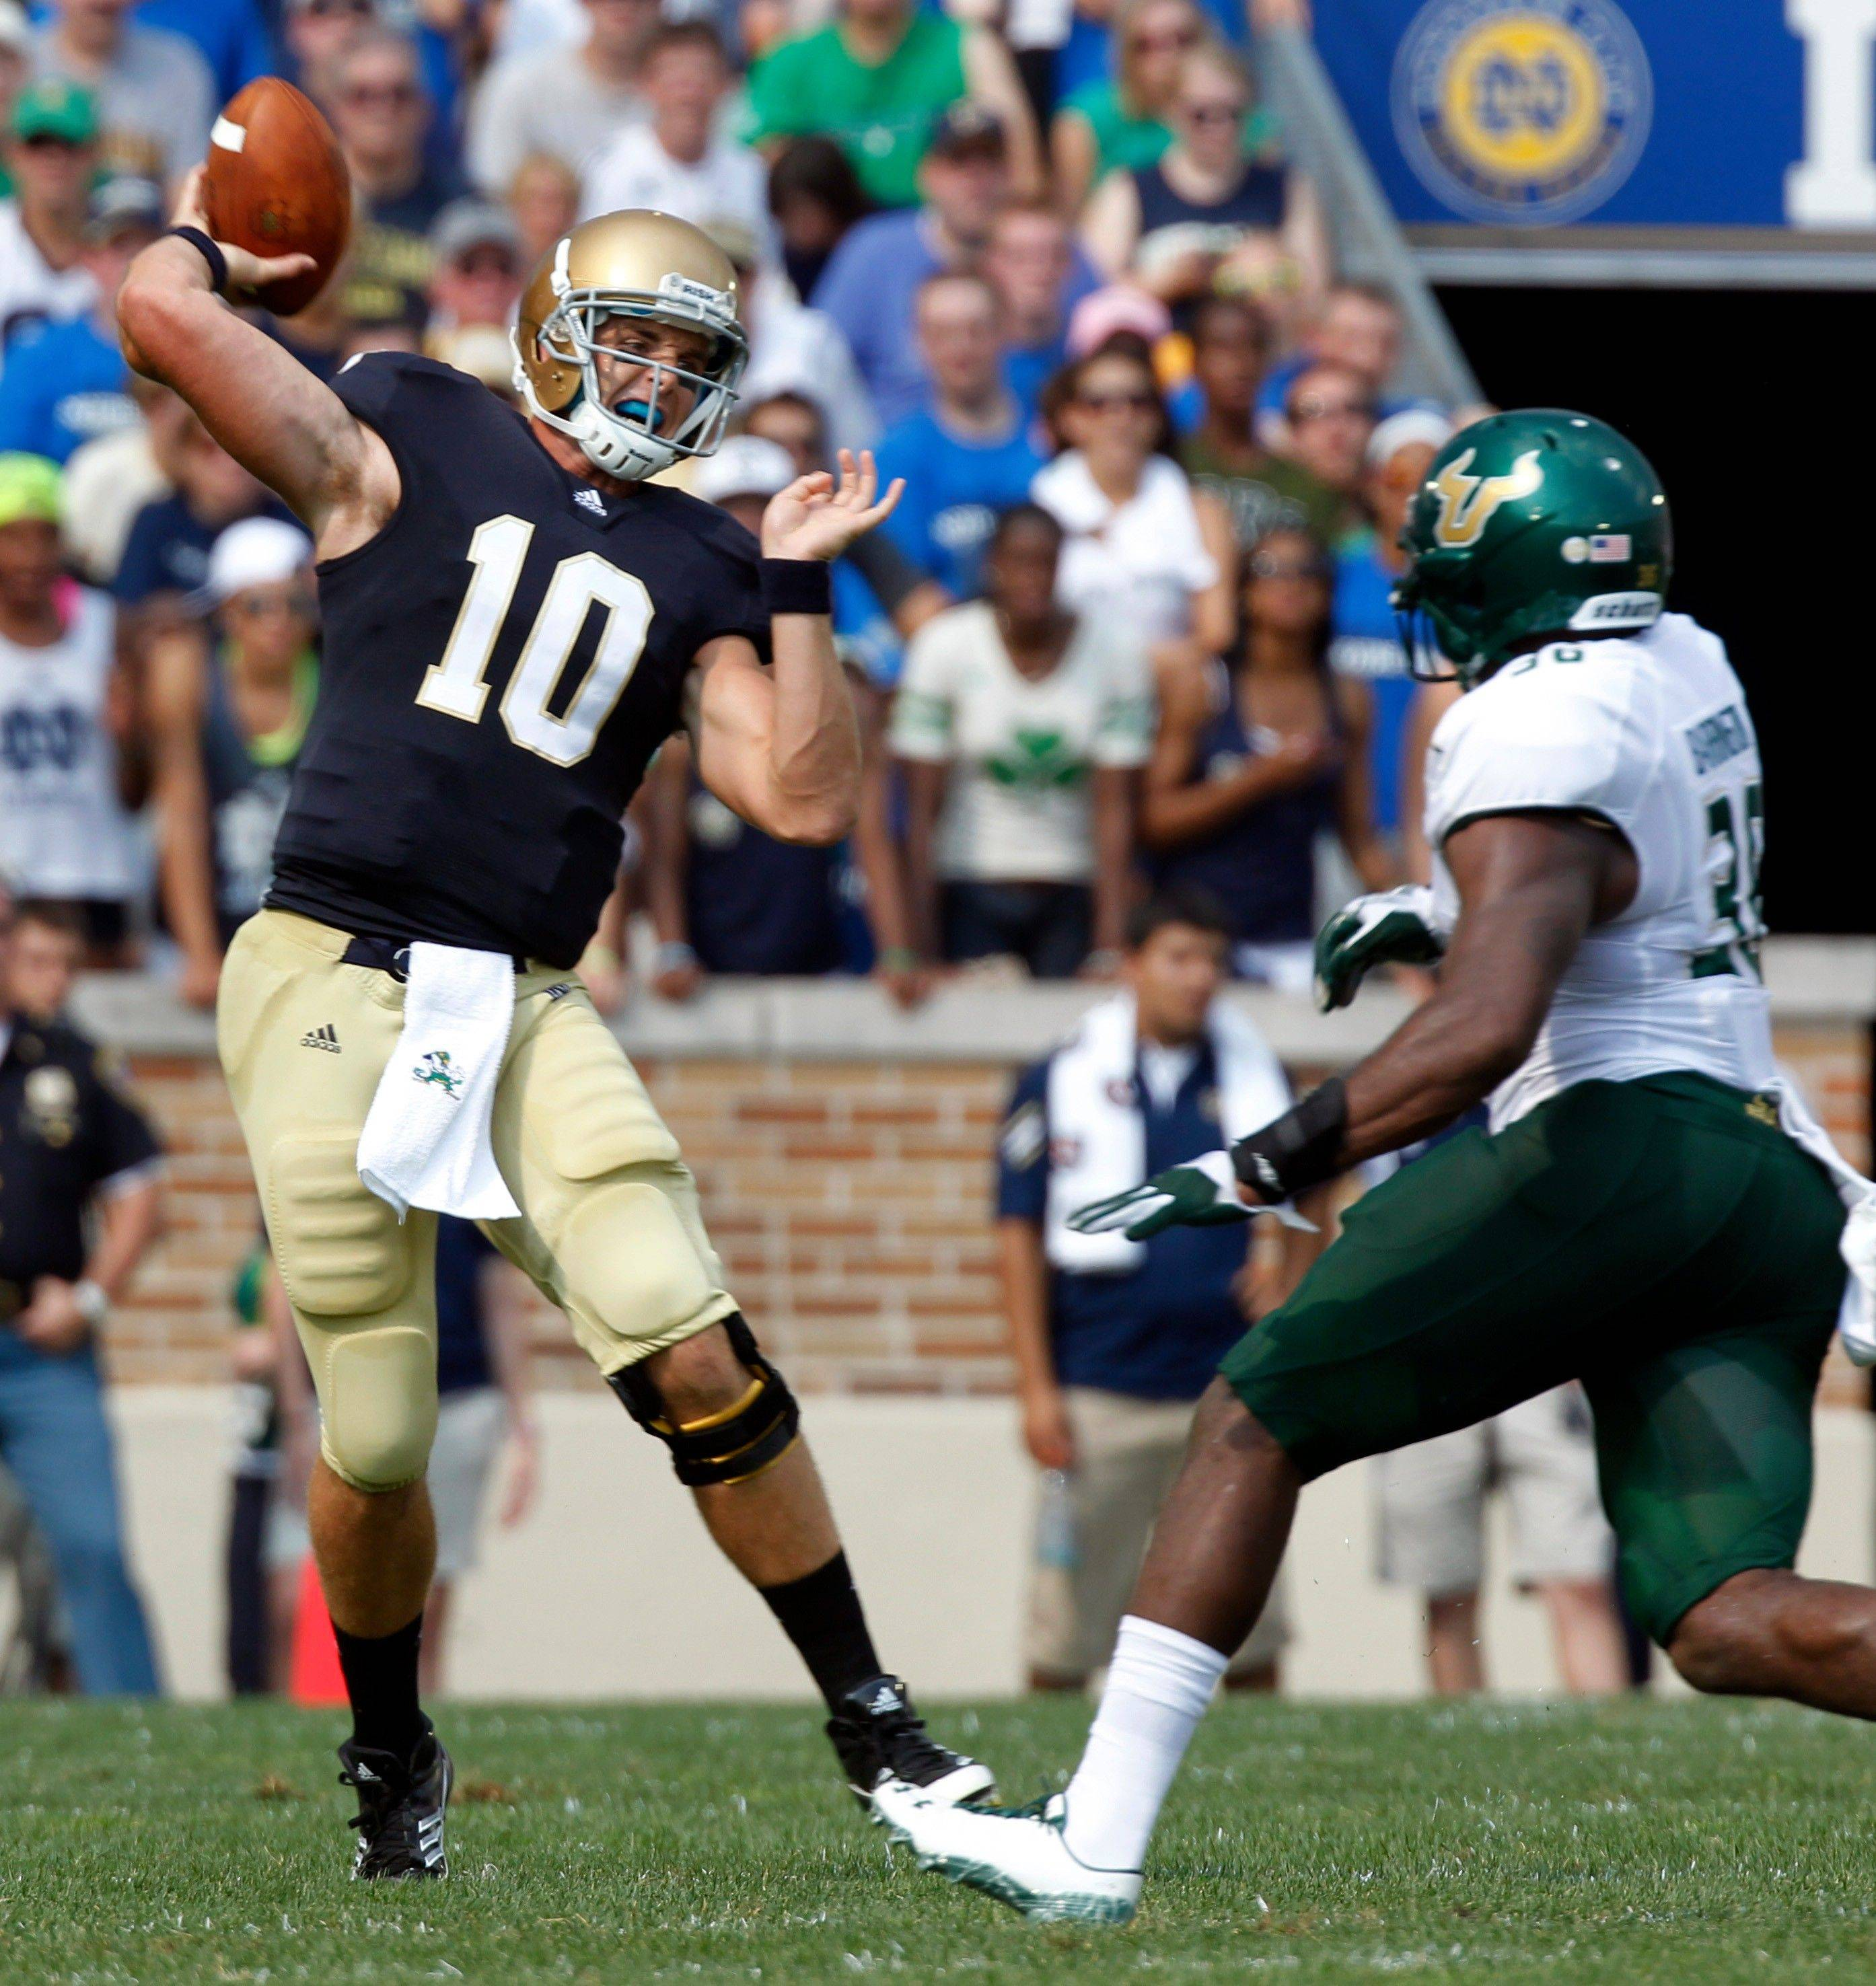 Dayne Crist makes a throw under pressure during the first half Saturday in South Bend, Ind. Crist completed just 7 of 15 passes and threw an interception in the end zone during Notre Dame's 23-20 loss to South Florida.